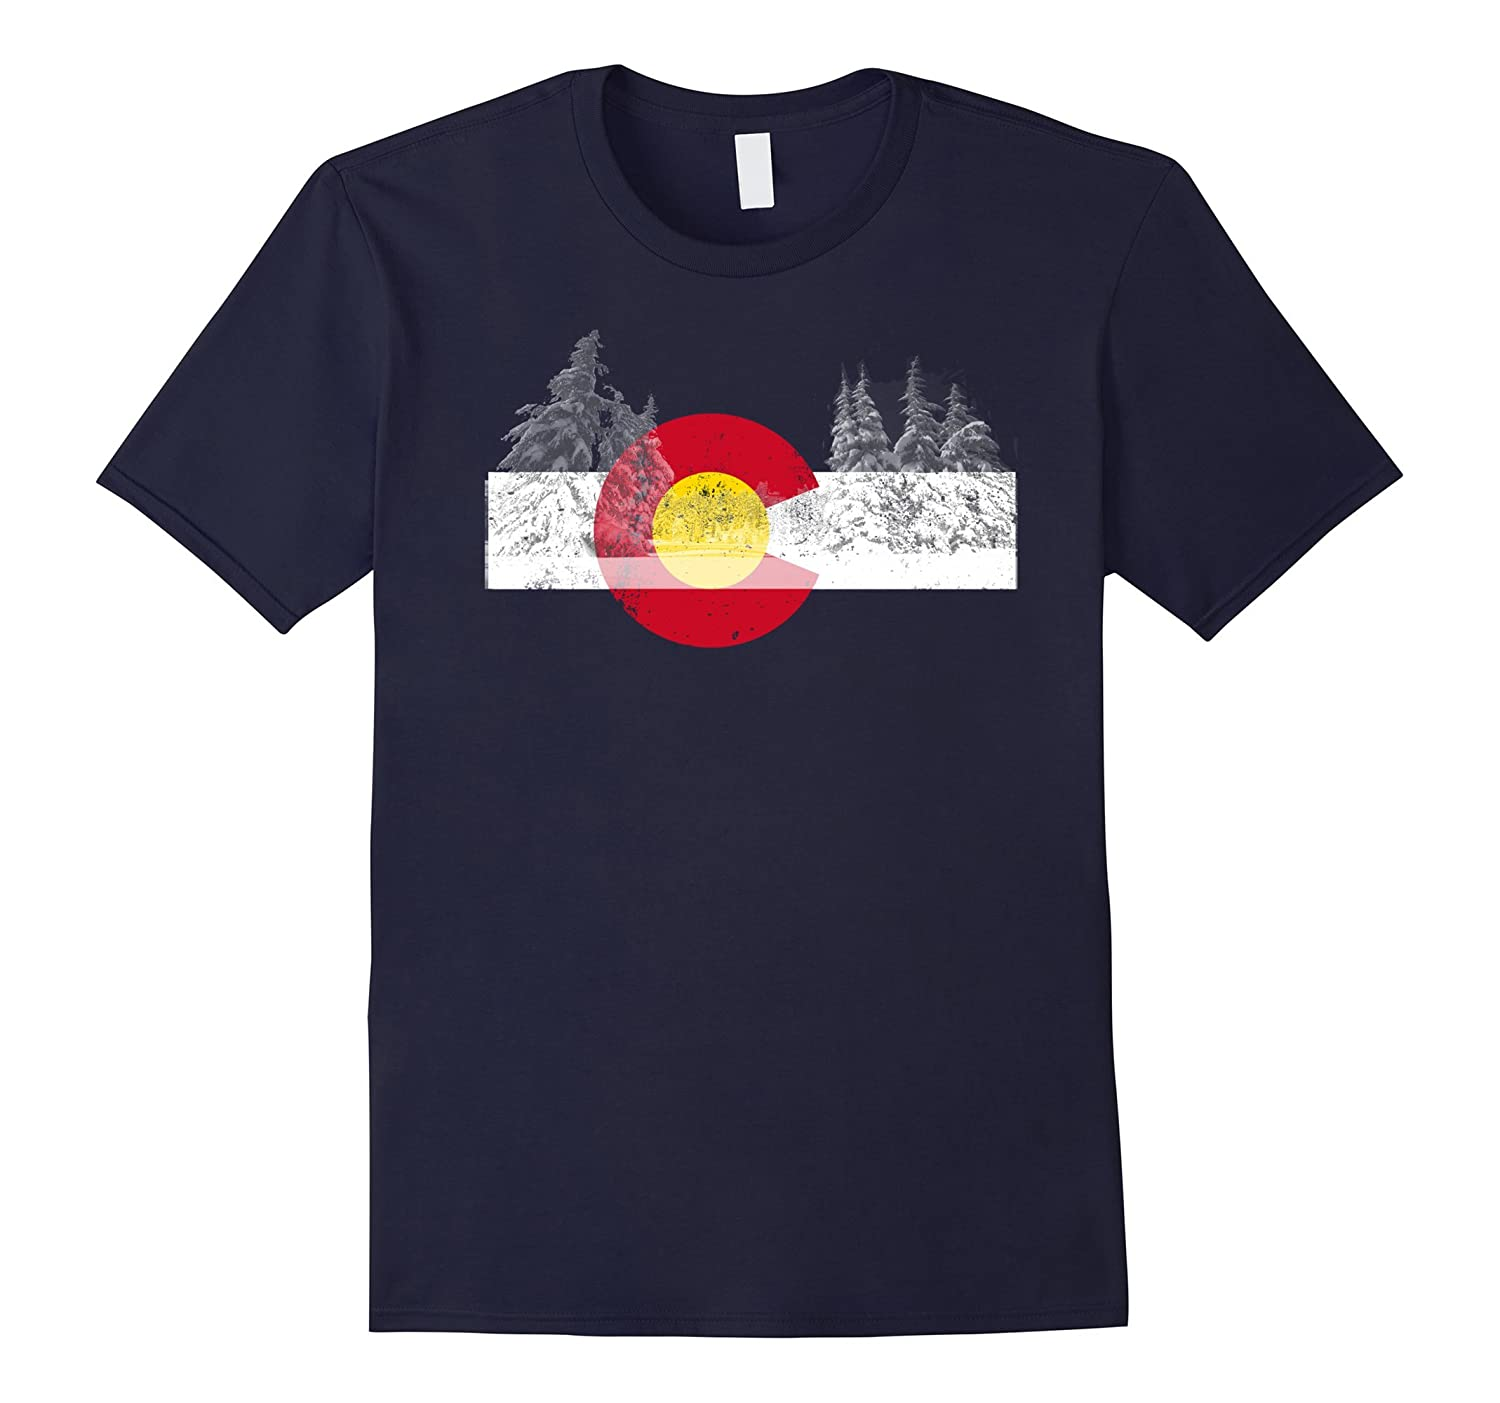 Colorado State Flag T-Shirt Mountain Vintage Ski TShirt Gift-T-Shirt